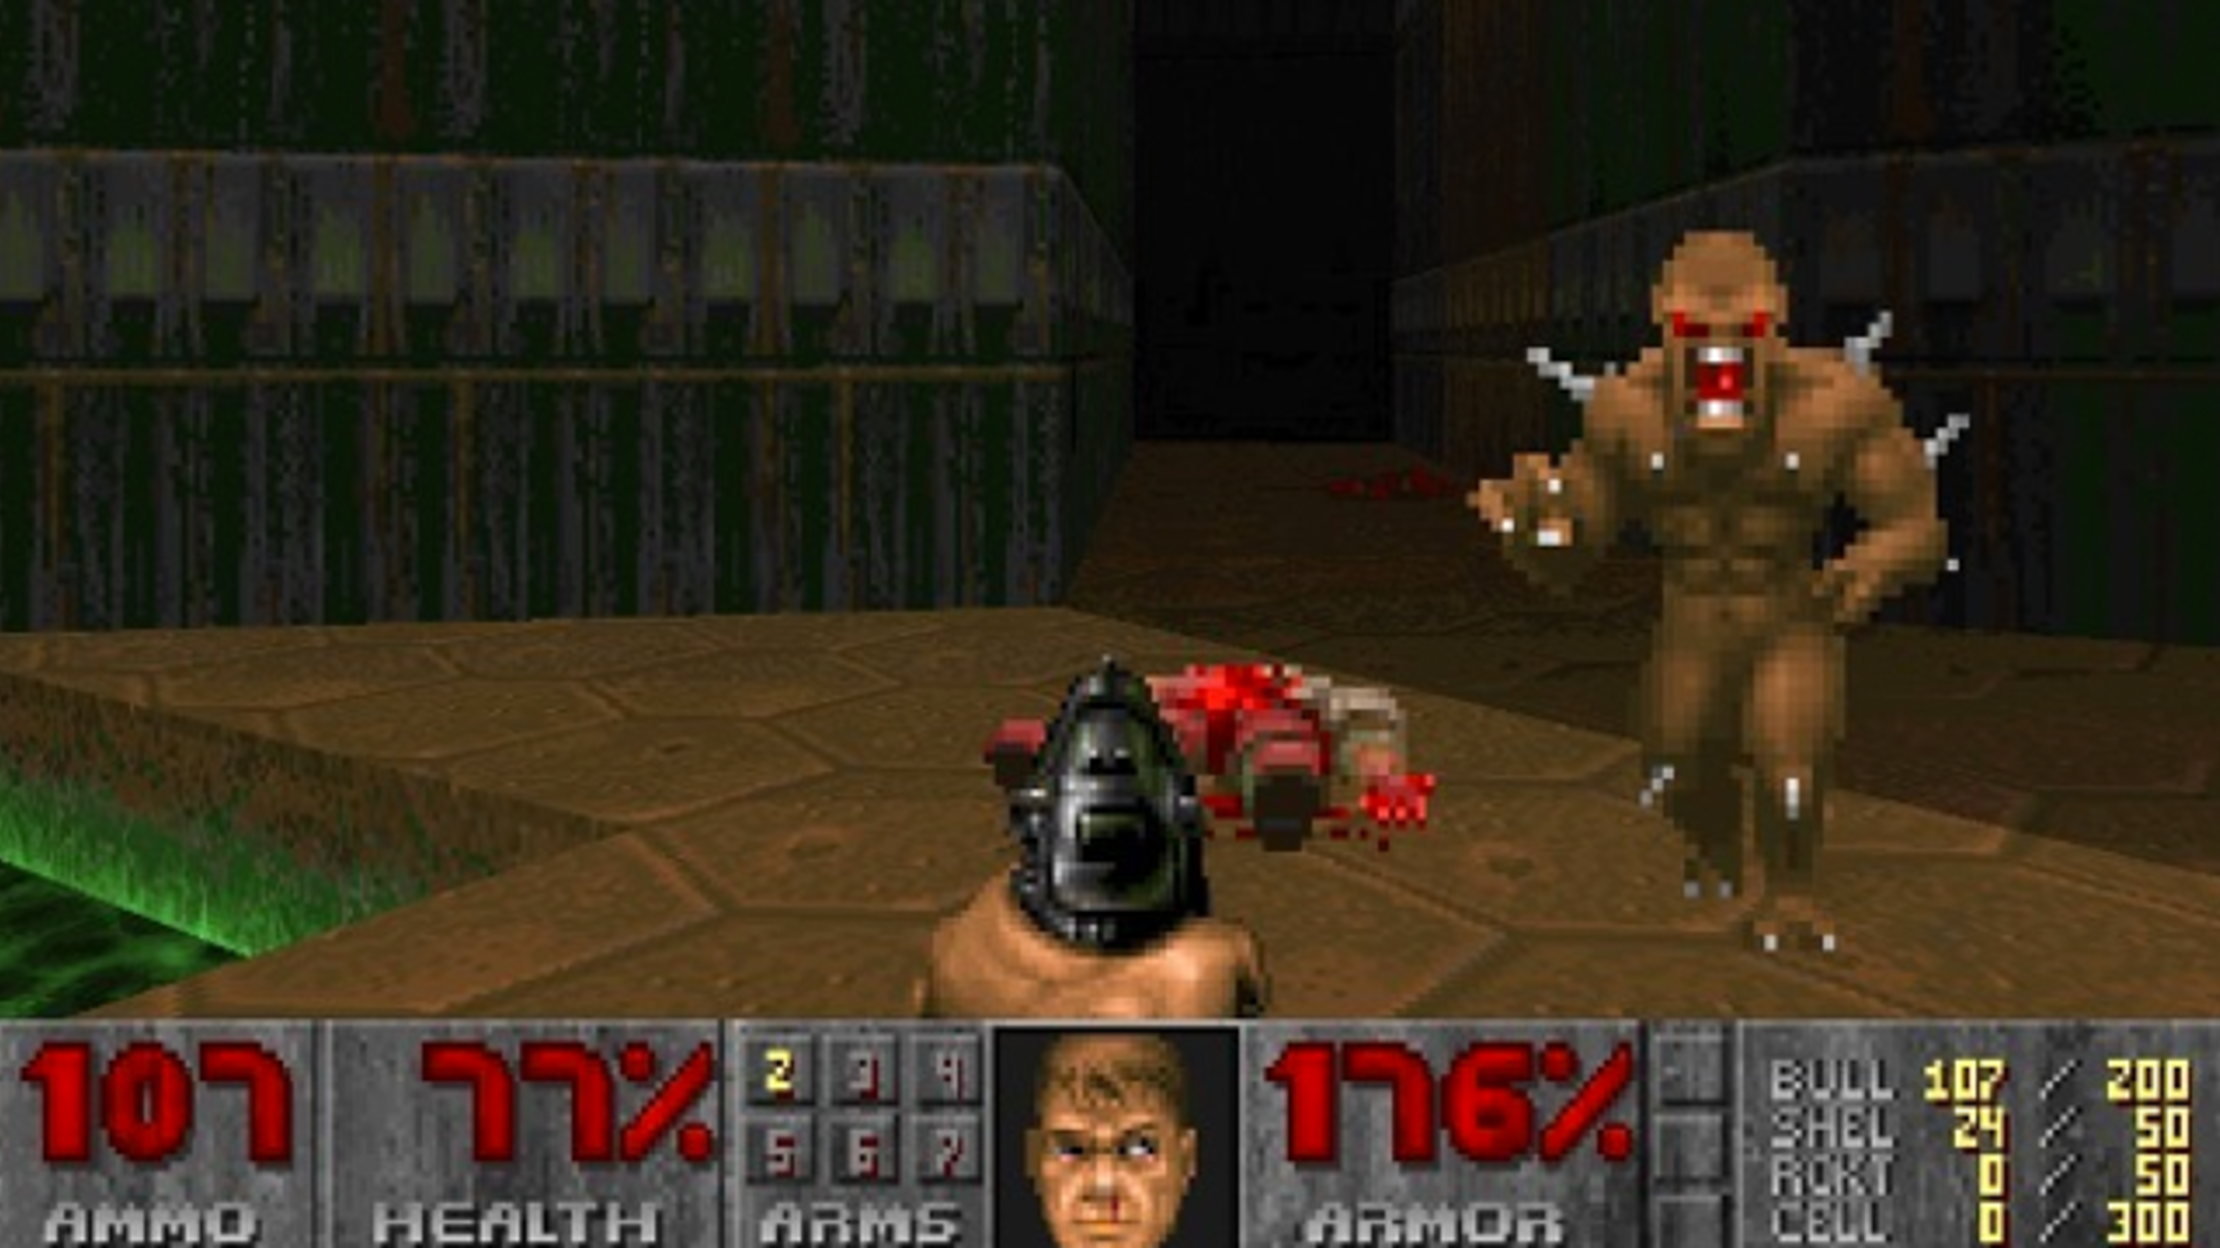 14 Explosive Facts About 'Doom' | Mental Floss